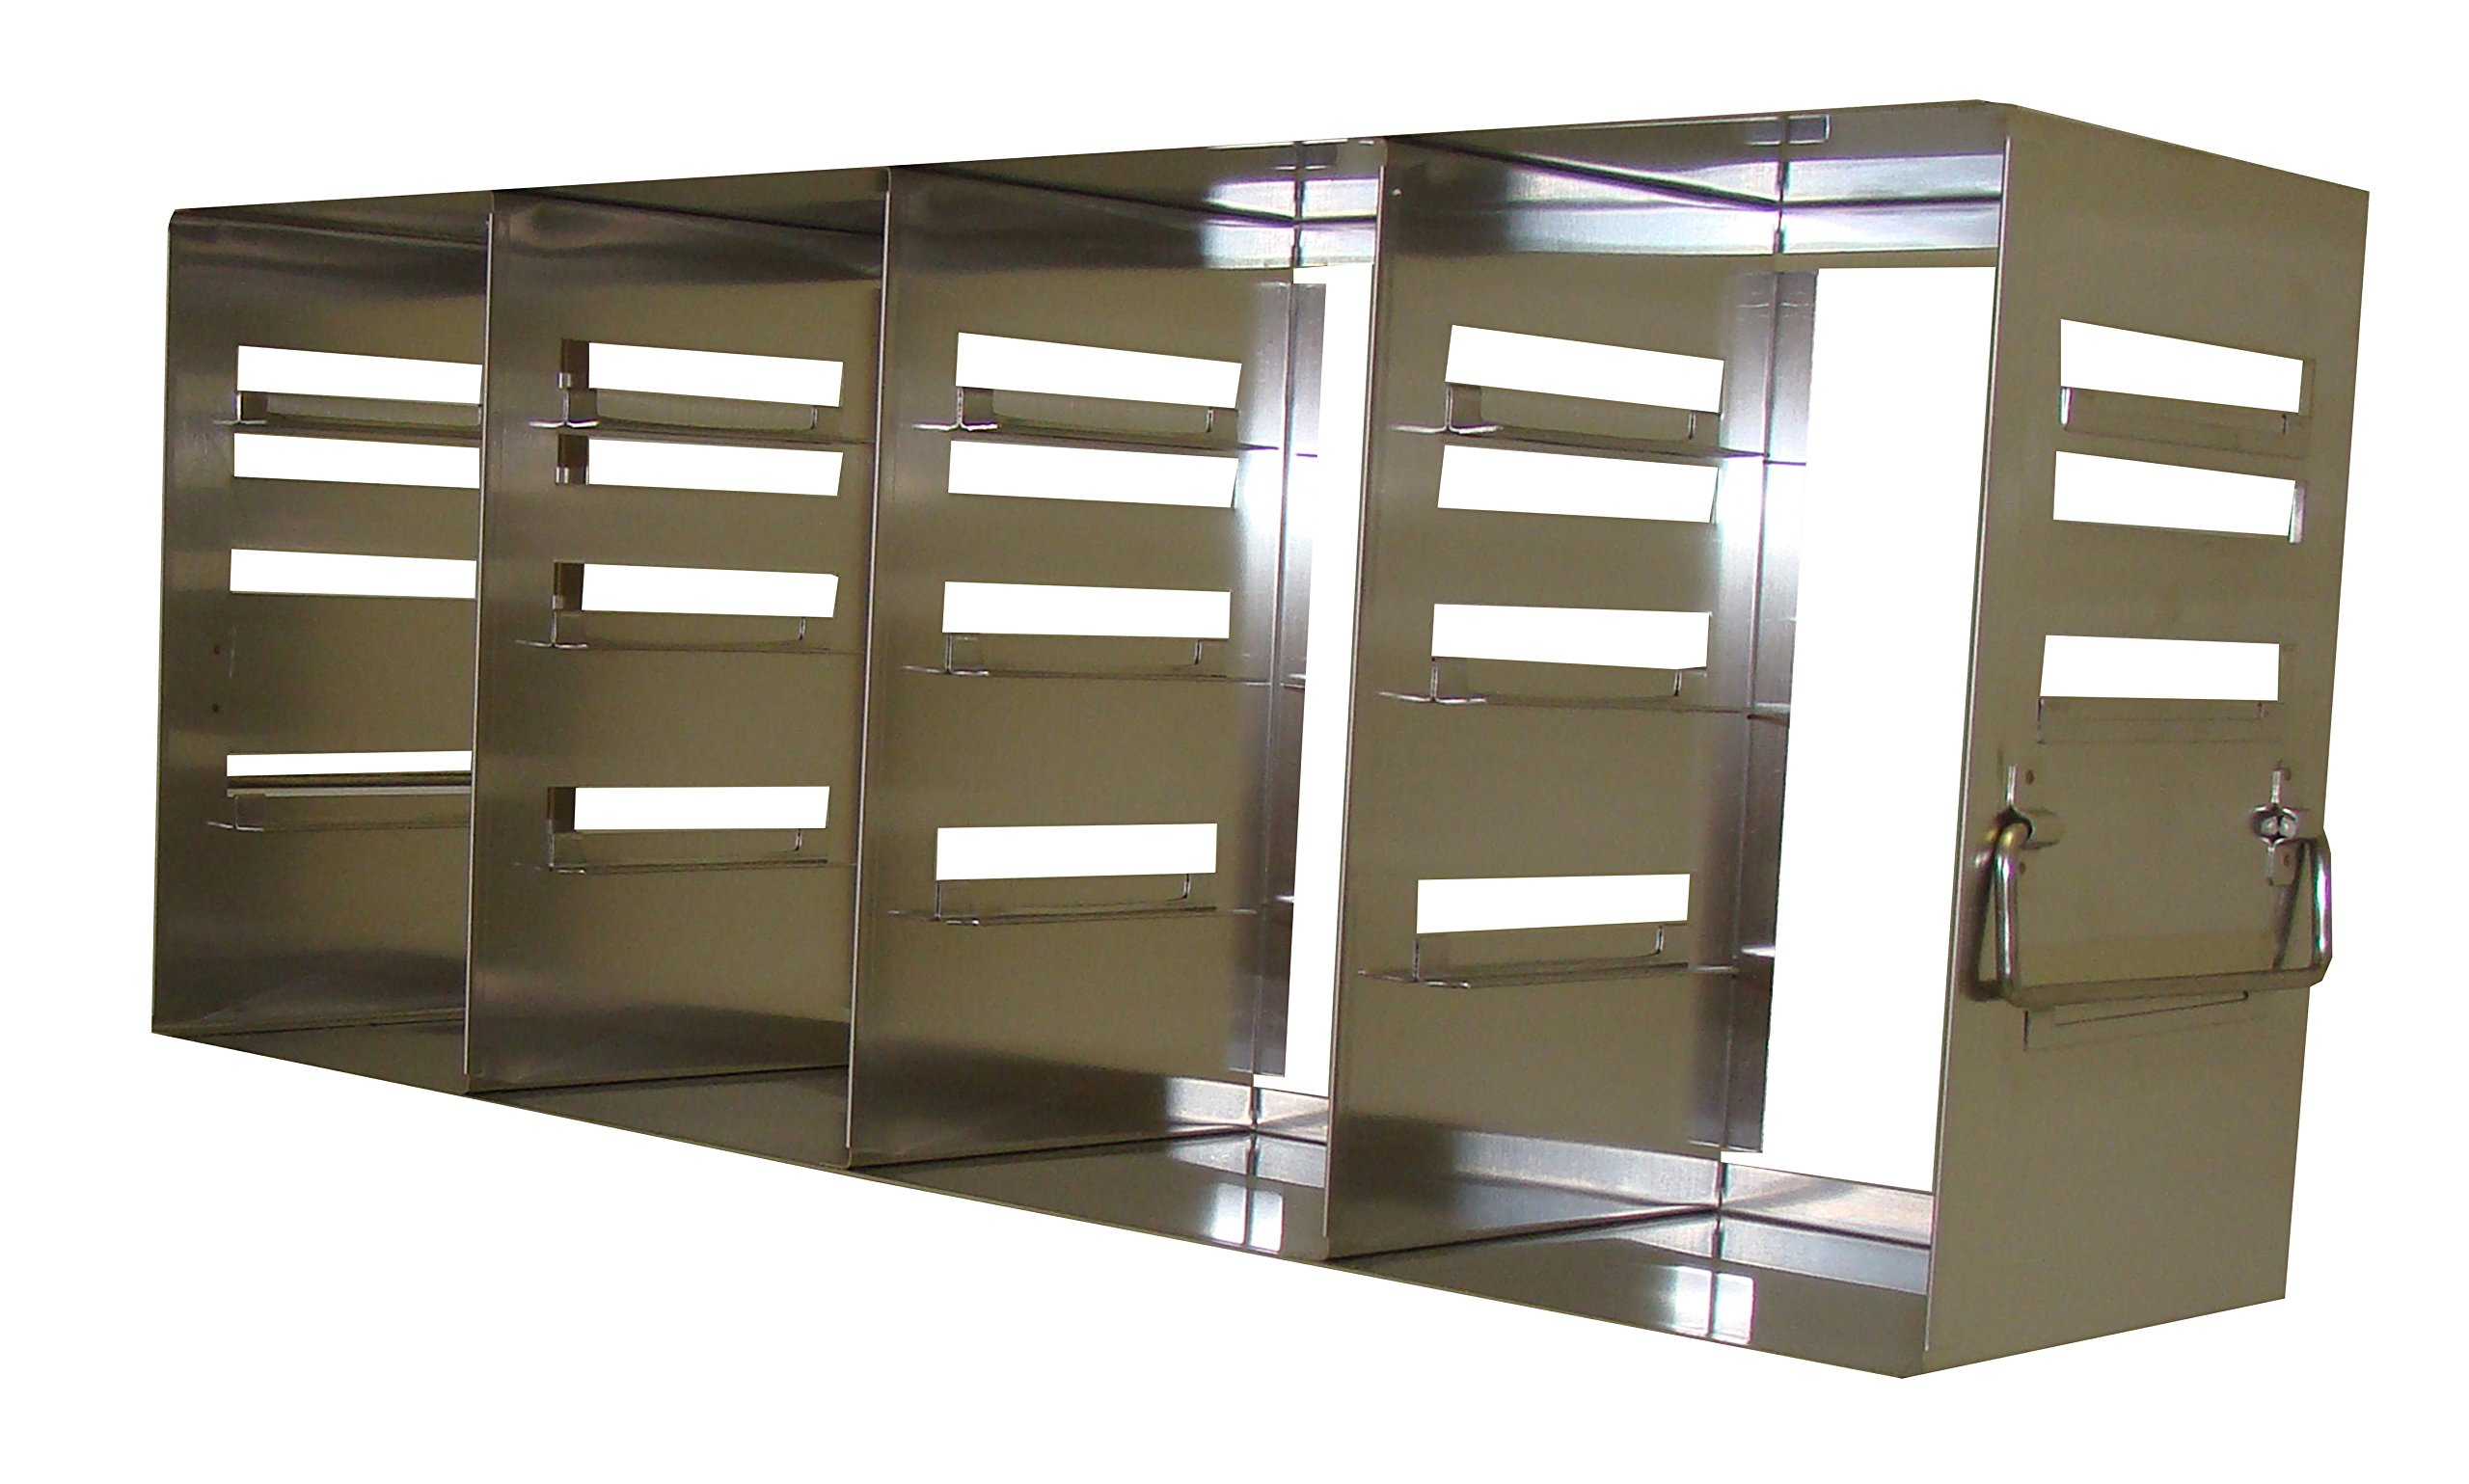 Adjustable Freezer Rack, Holds 2 and 3 Inch Boxes, 22 1/8 x 5 1/2 x 8 7/8 Inches